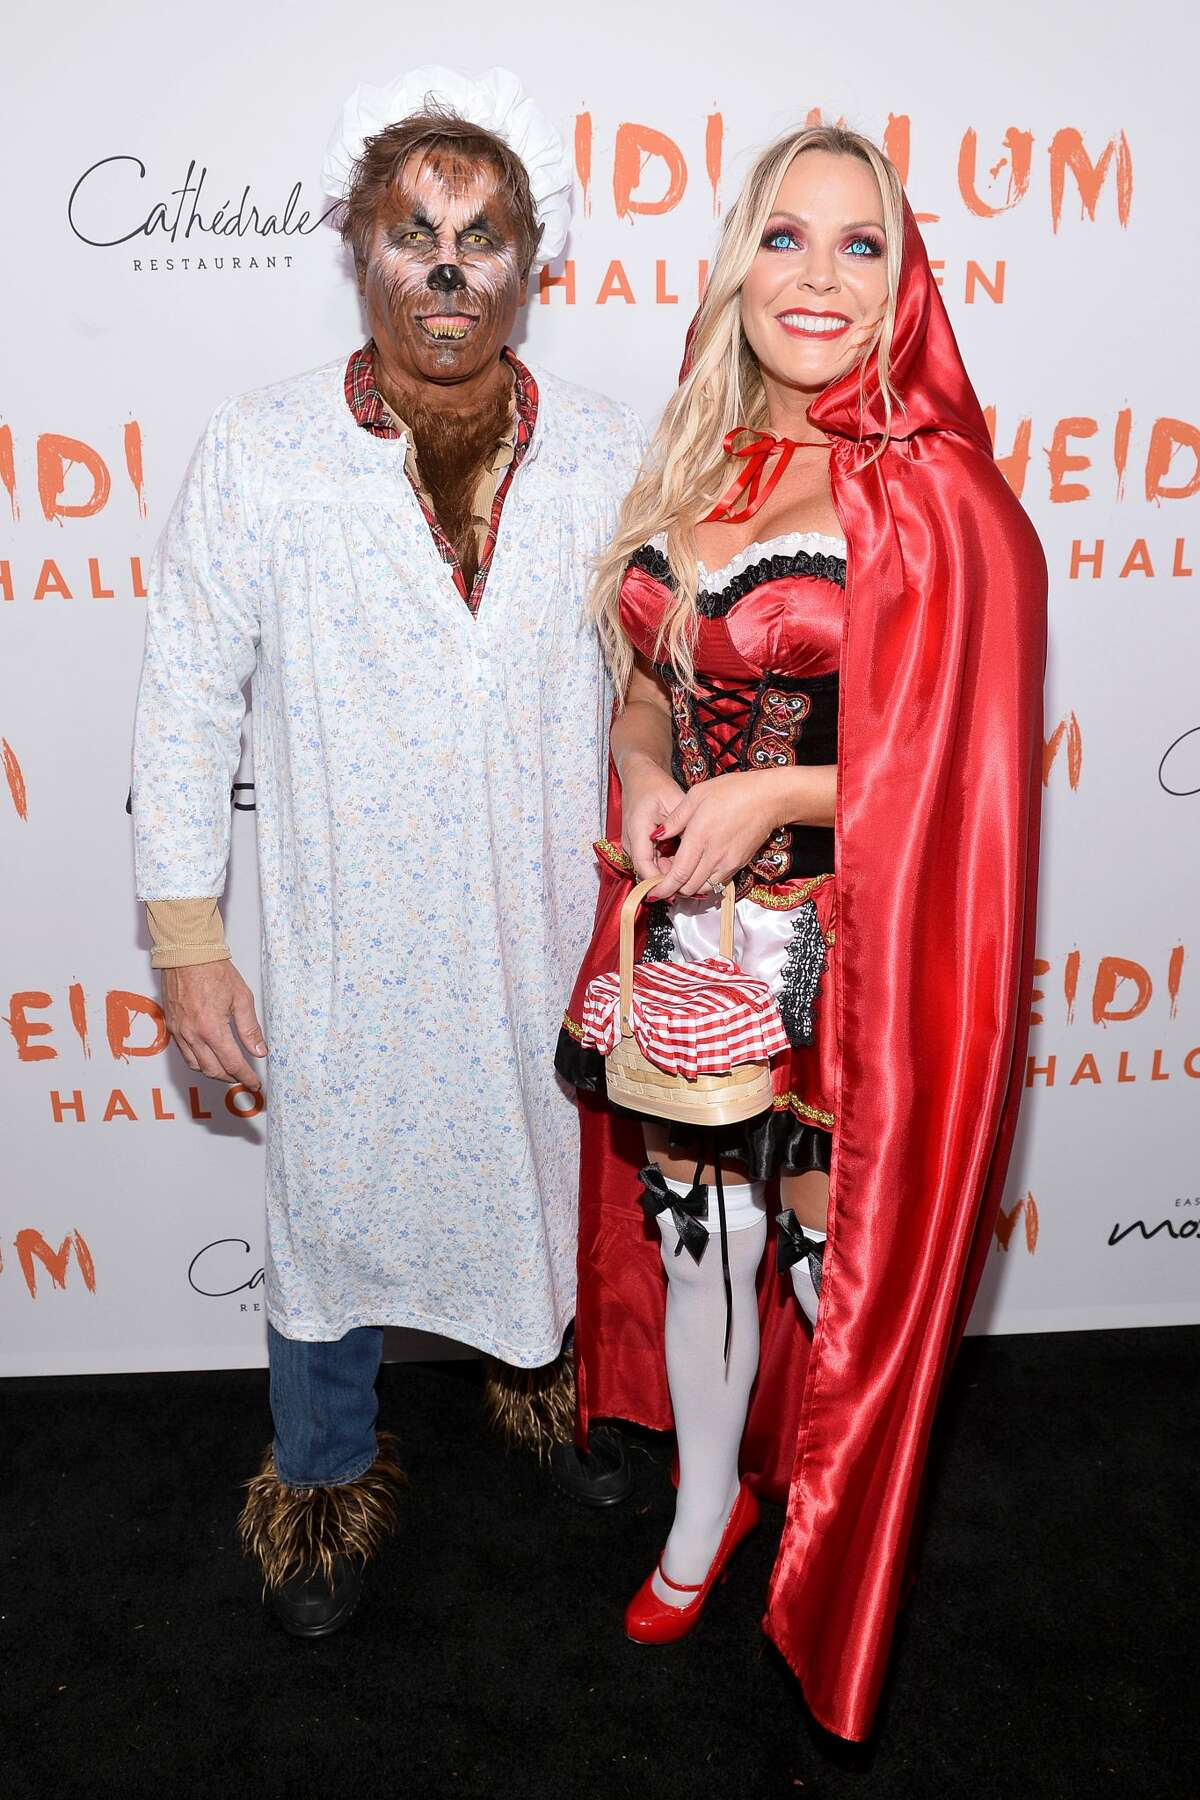 Kevin Mazur (L) and Jennifer Mazur attend Heidi Klum's 20th Annual Halloween Party presented by Amazon Prime Video and SVEDKA Vodka at Cathédrale New York on October 31, 2019 in New York City. (Photo by Noam Galai/Getty Images for Heidi Klum)